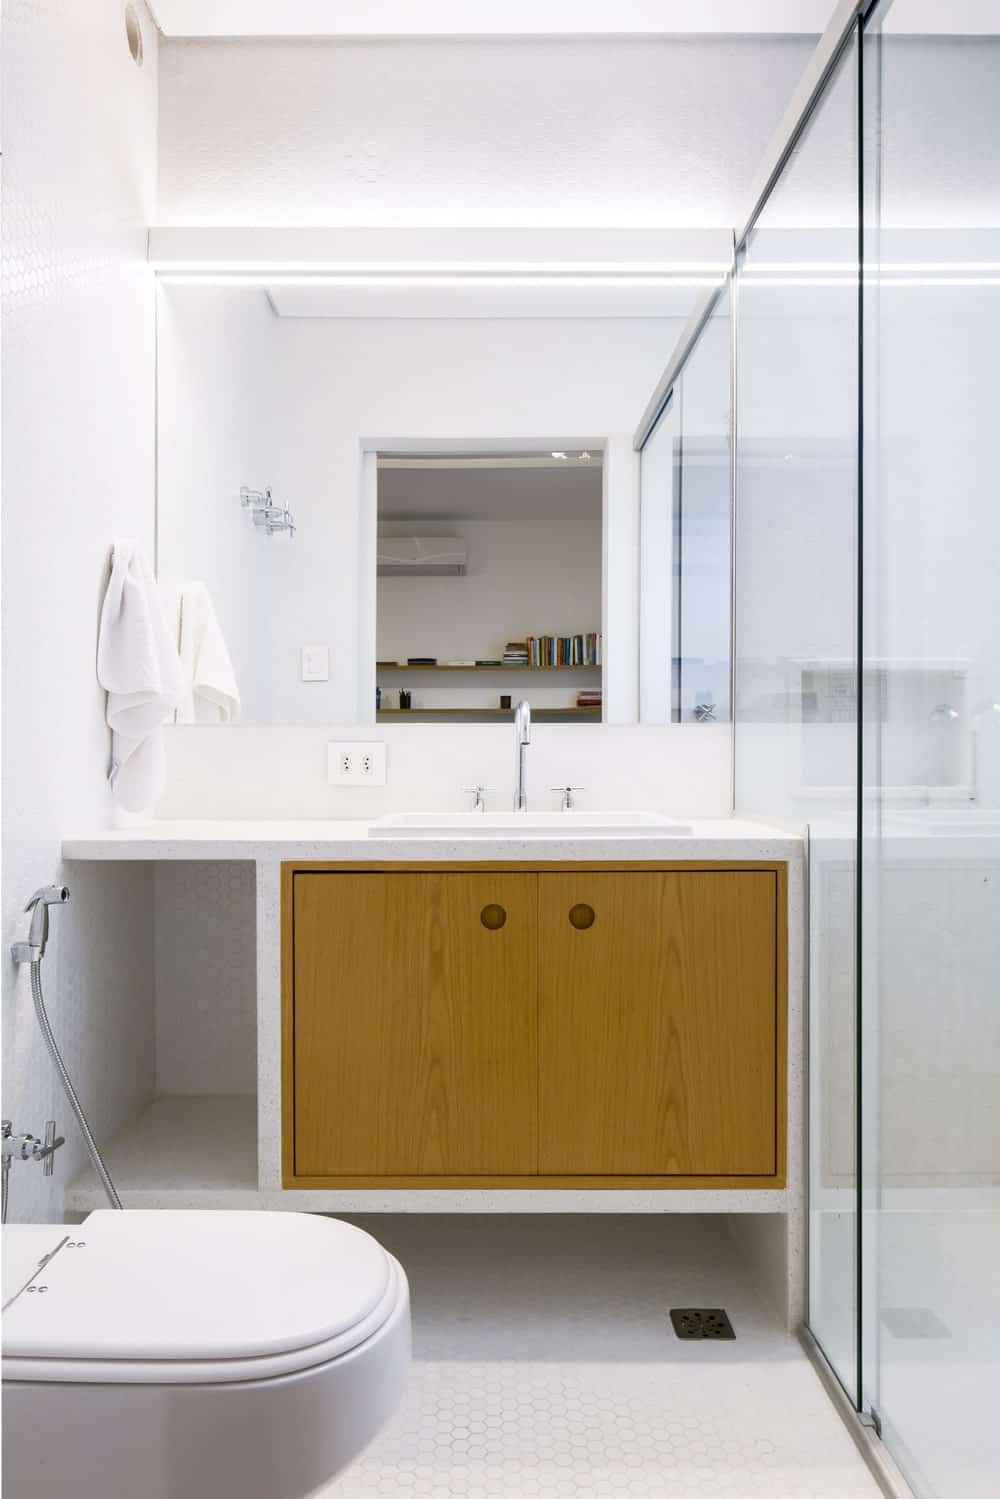 This bathroom has a simple modern vanity with a couple of wooden cabinets next to the toilet and the glass-enclosed shower area.